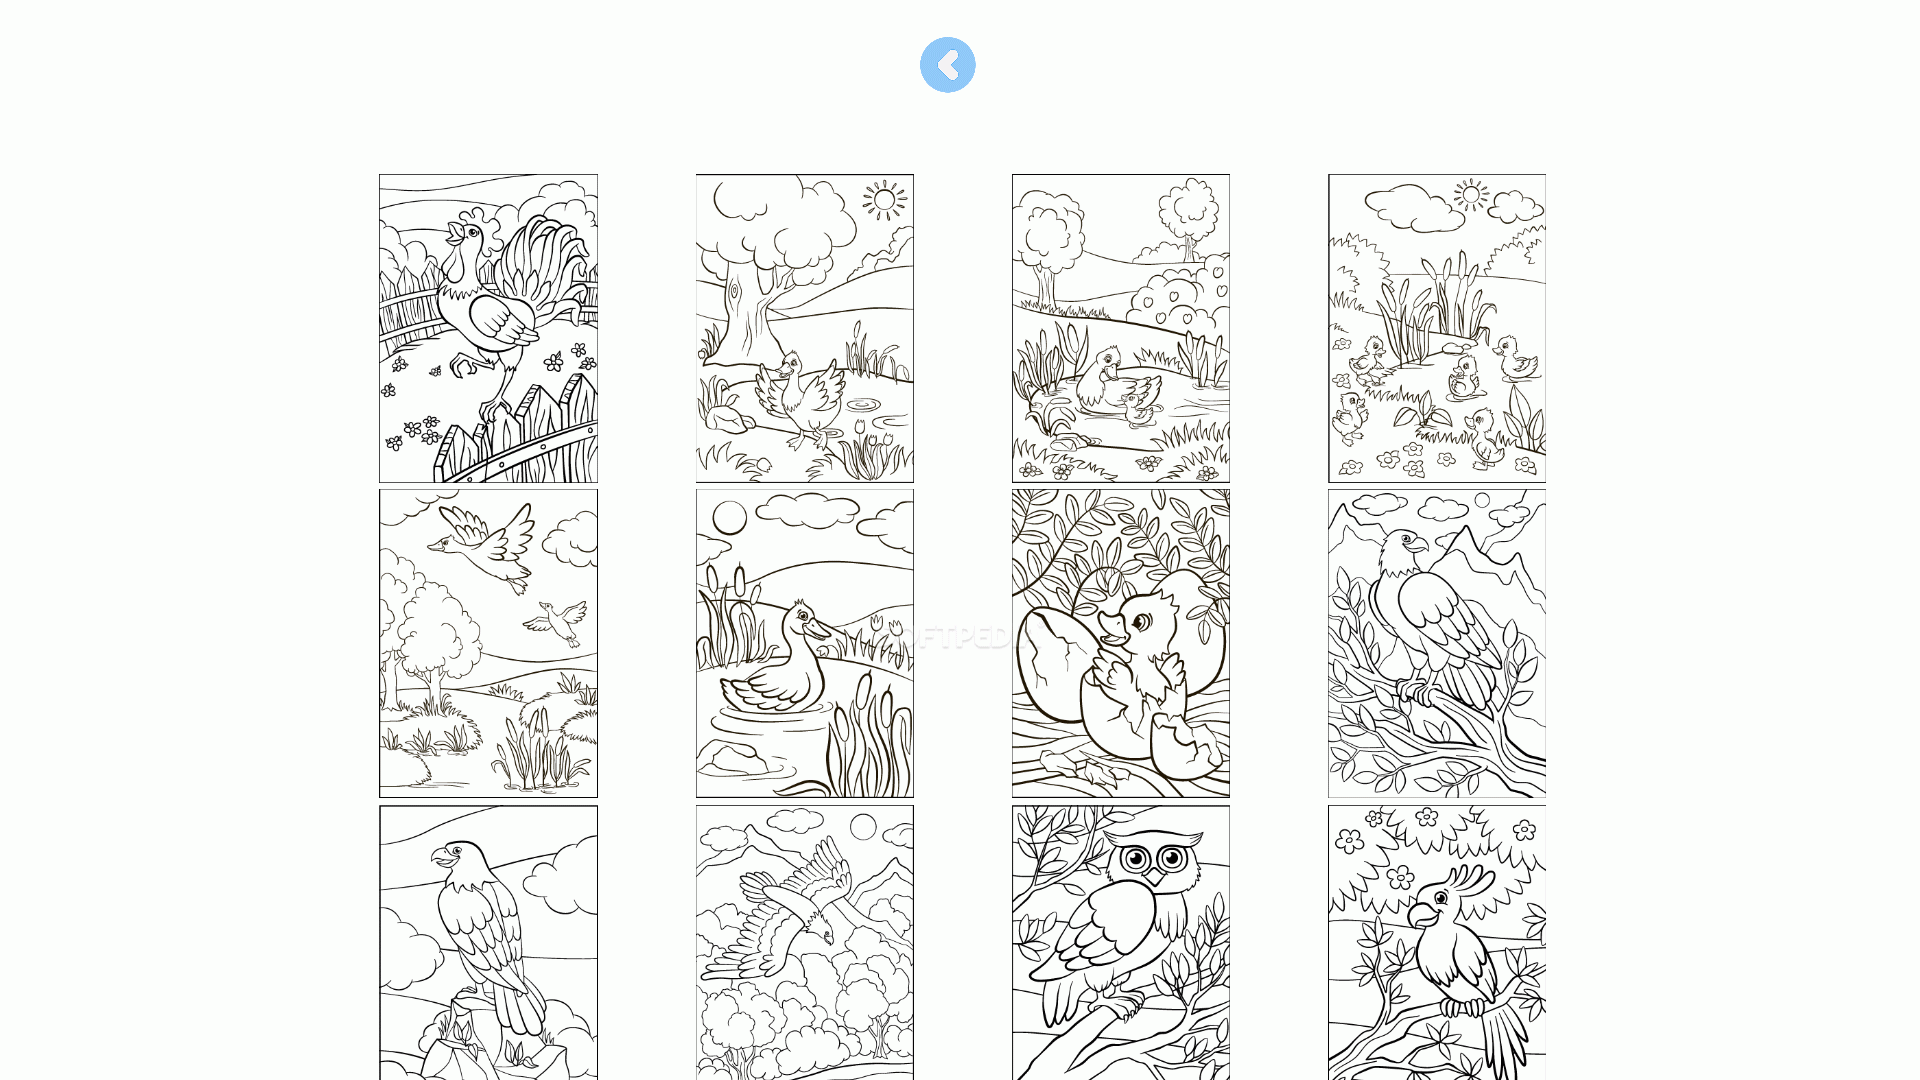 - Download Zen: Coloring Pages For Kids 4.1.1.0